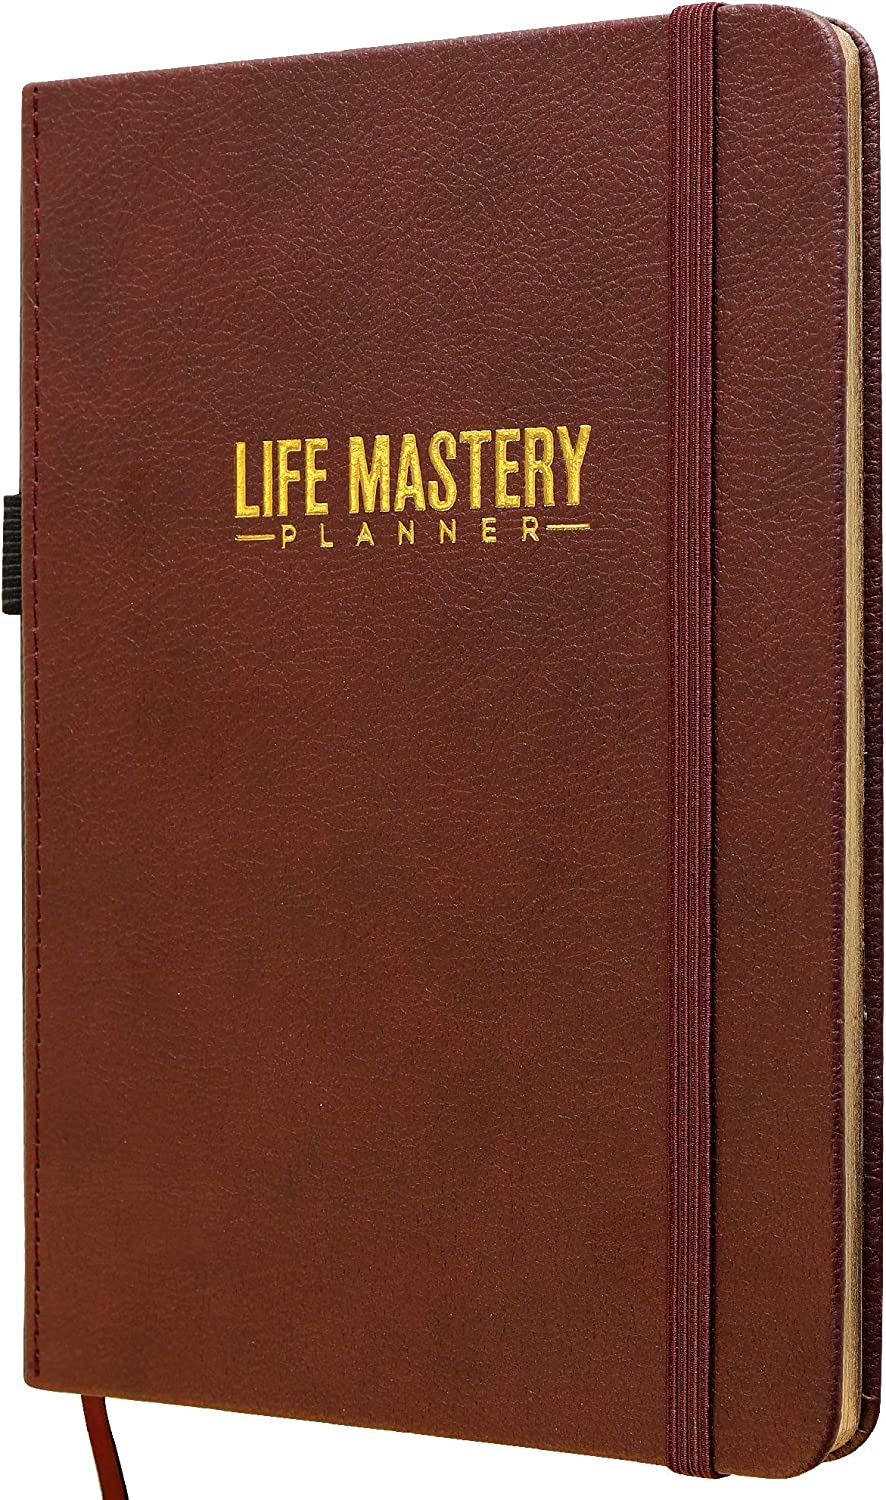 Life Mastery Planner - A 12 Month Your Lowest price challenge Journey Goals Large special price !! I Crush to